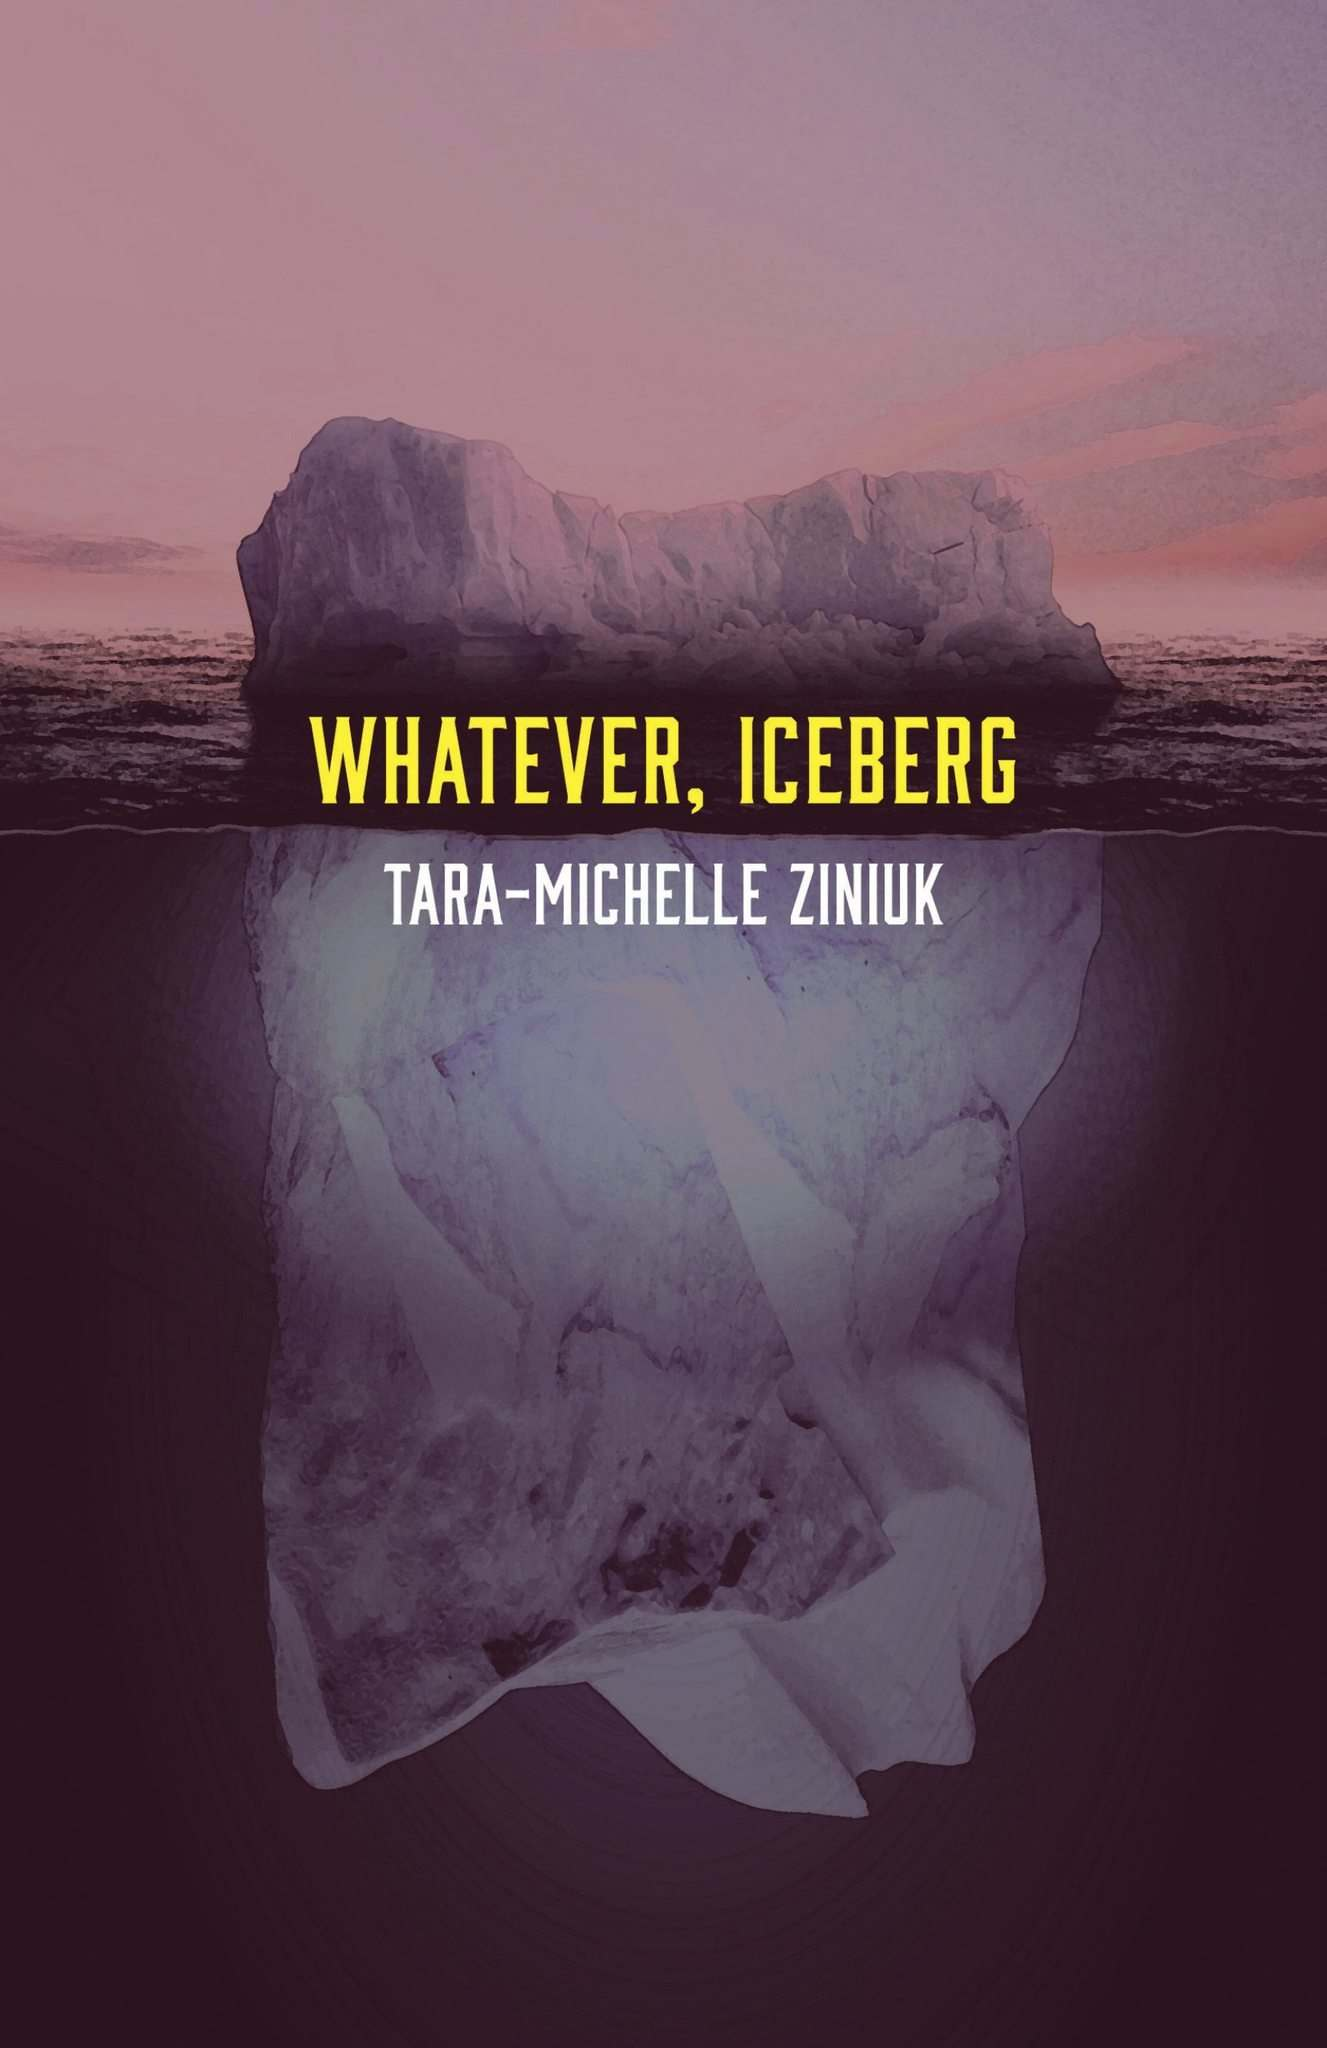 Whatever, Iceberg</p><p>By Tara-Michelle Ziniuk</p><p>Mansfield, 86 pages, $17</p>